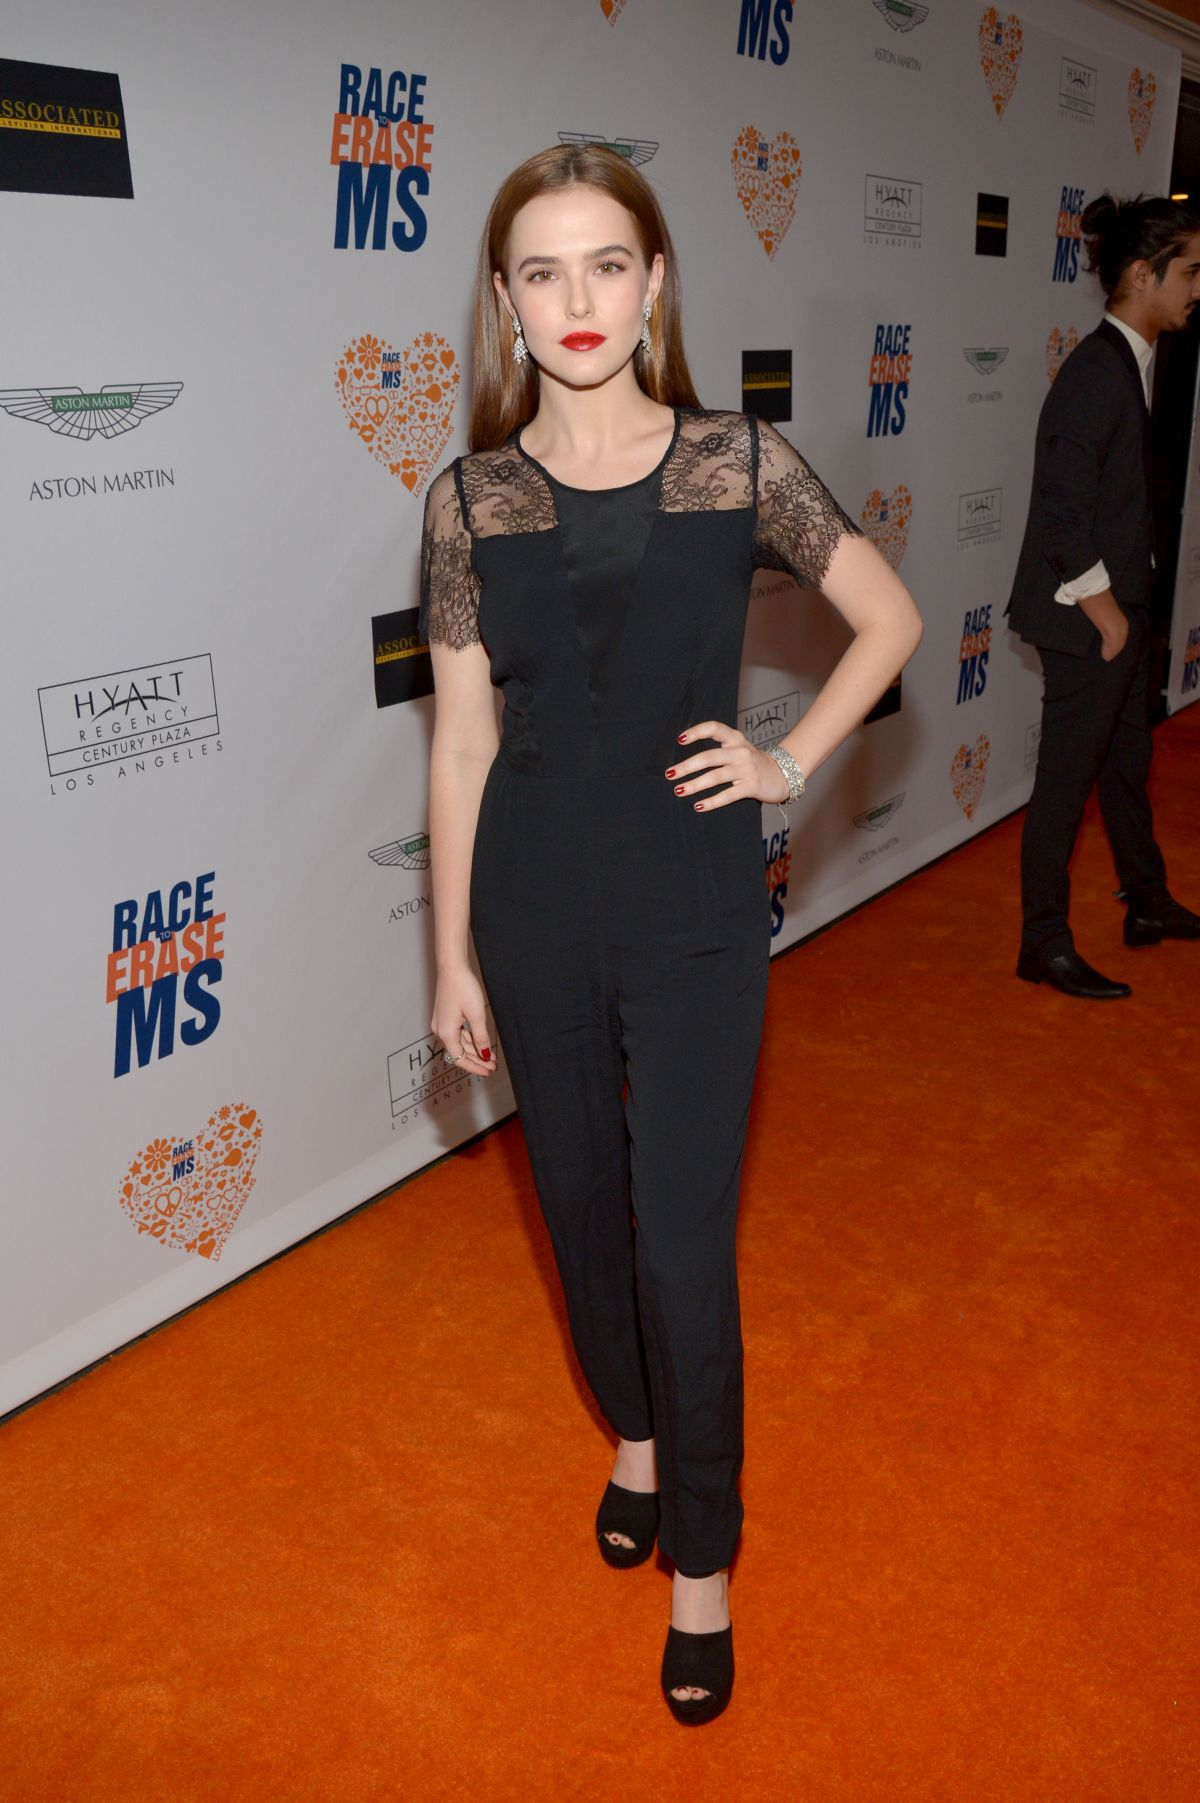 zoey deutch dating 2014 Online shopping from a great selection at movies & tv store.